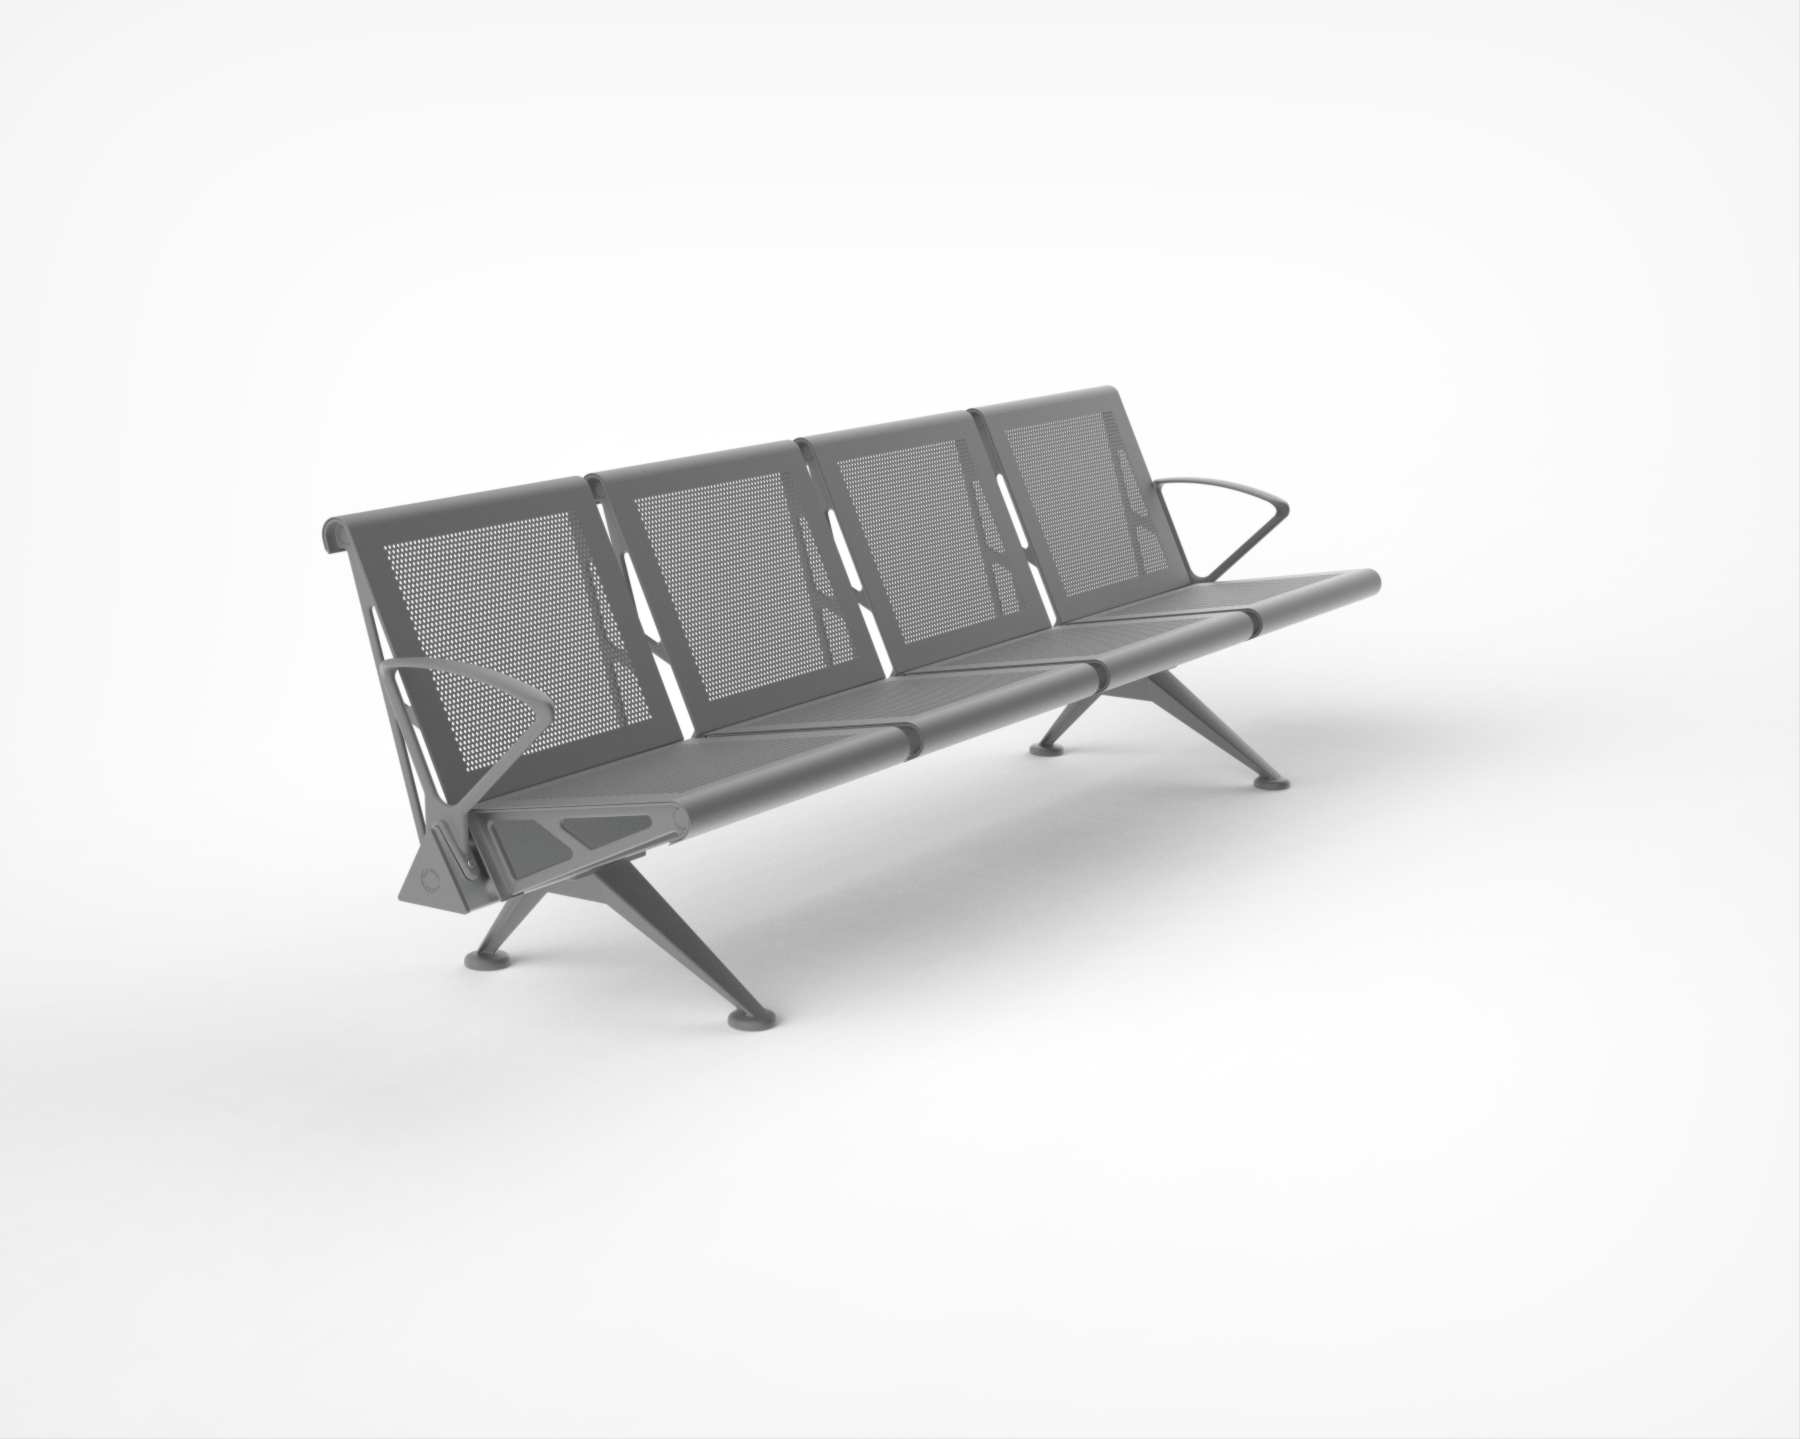 Trax - Low Back with Perforated Mild Steel finish